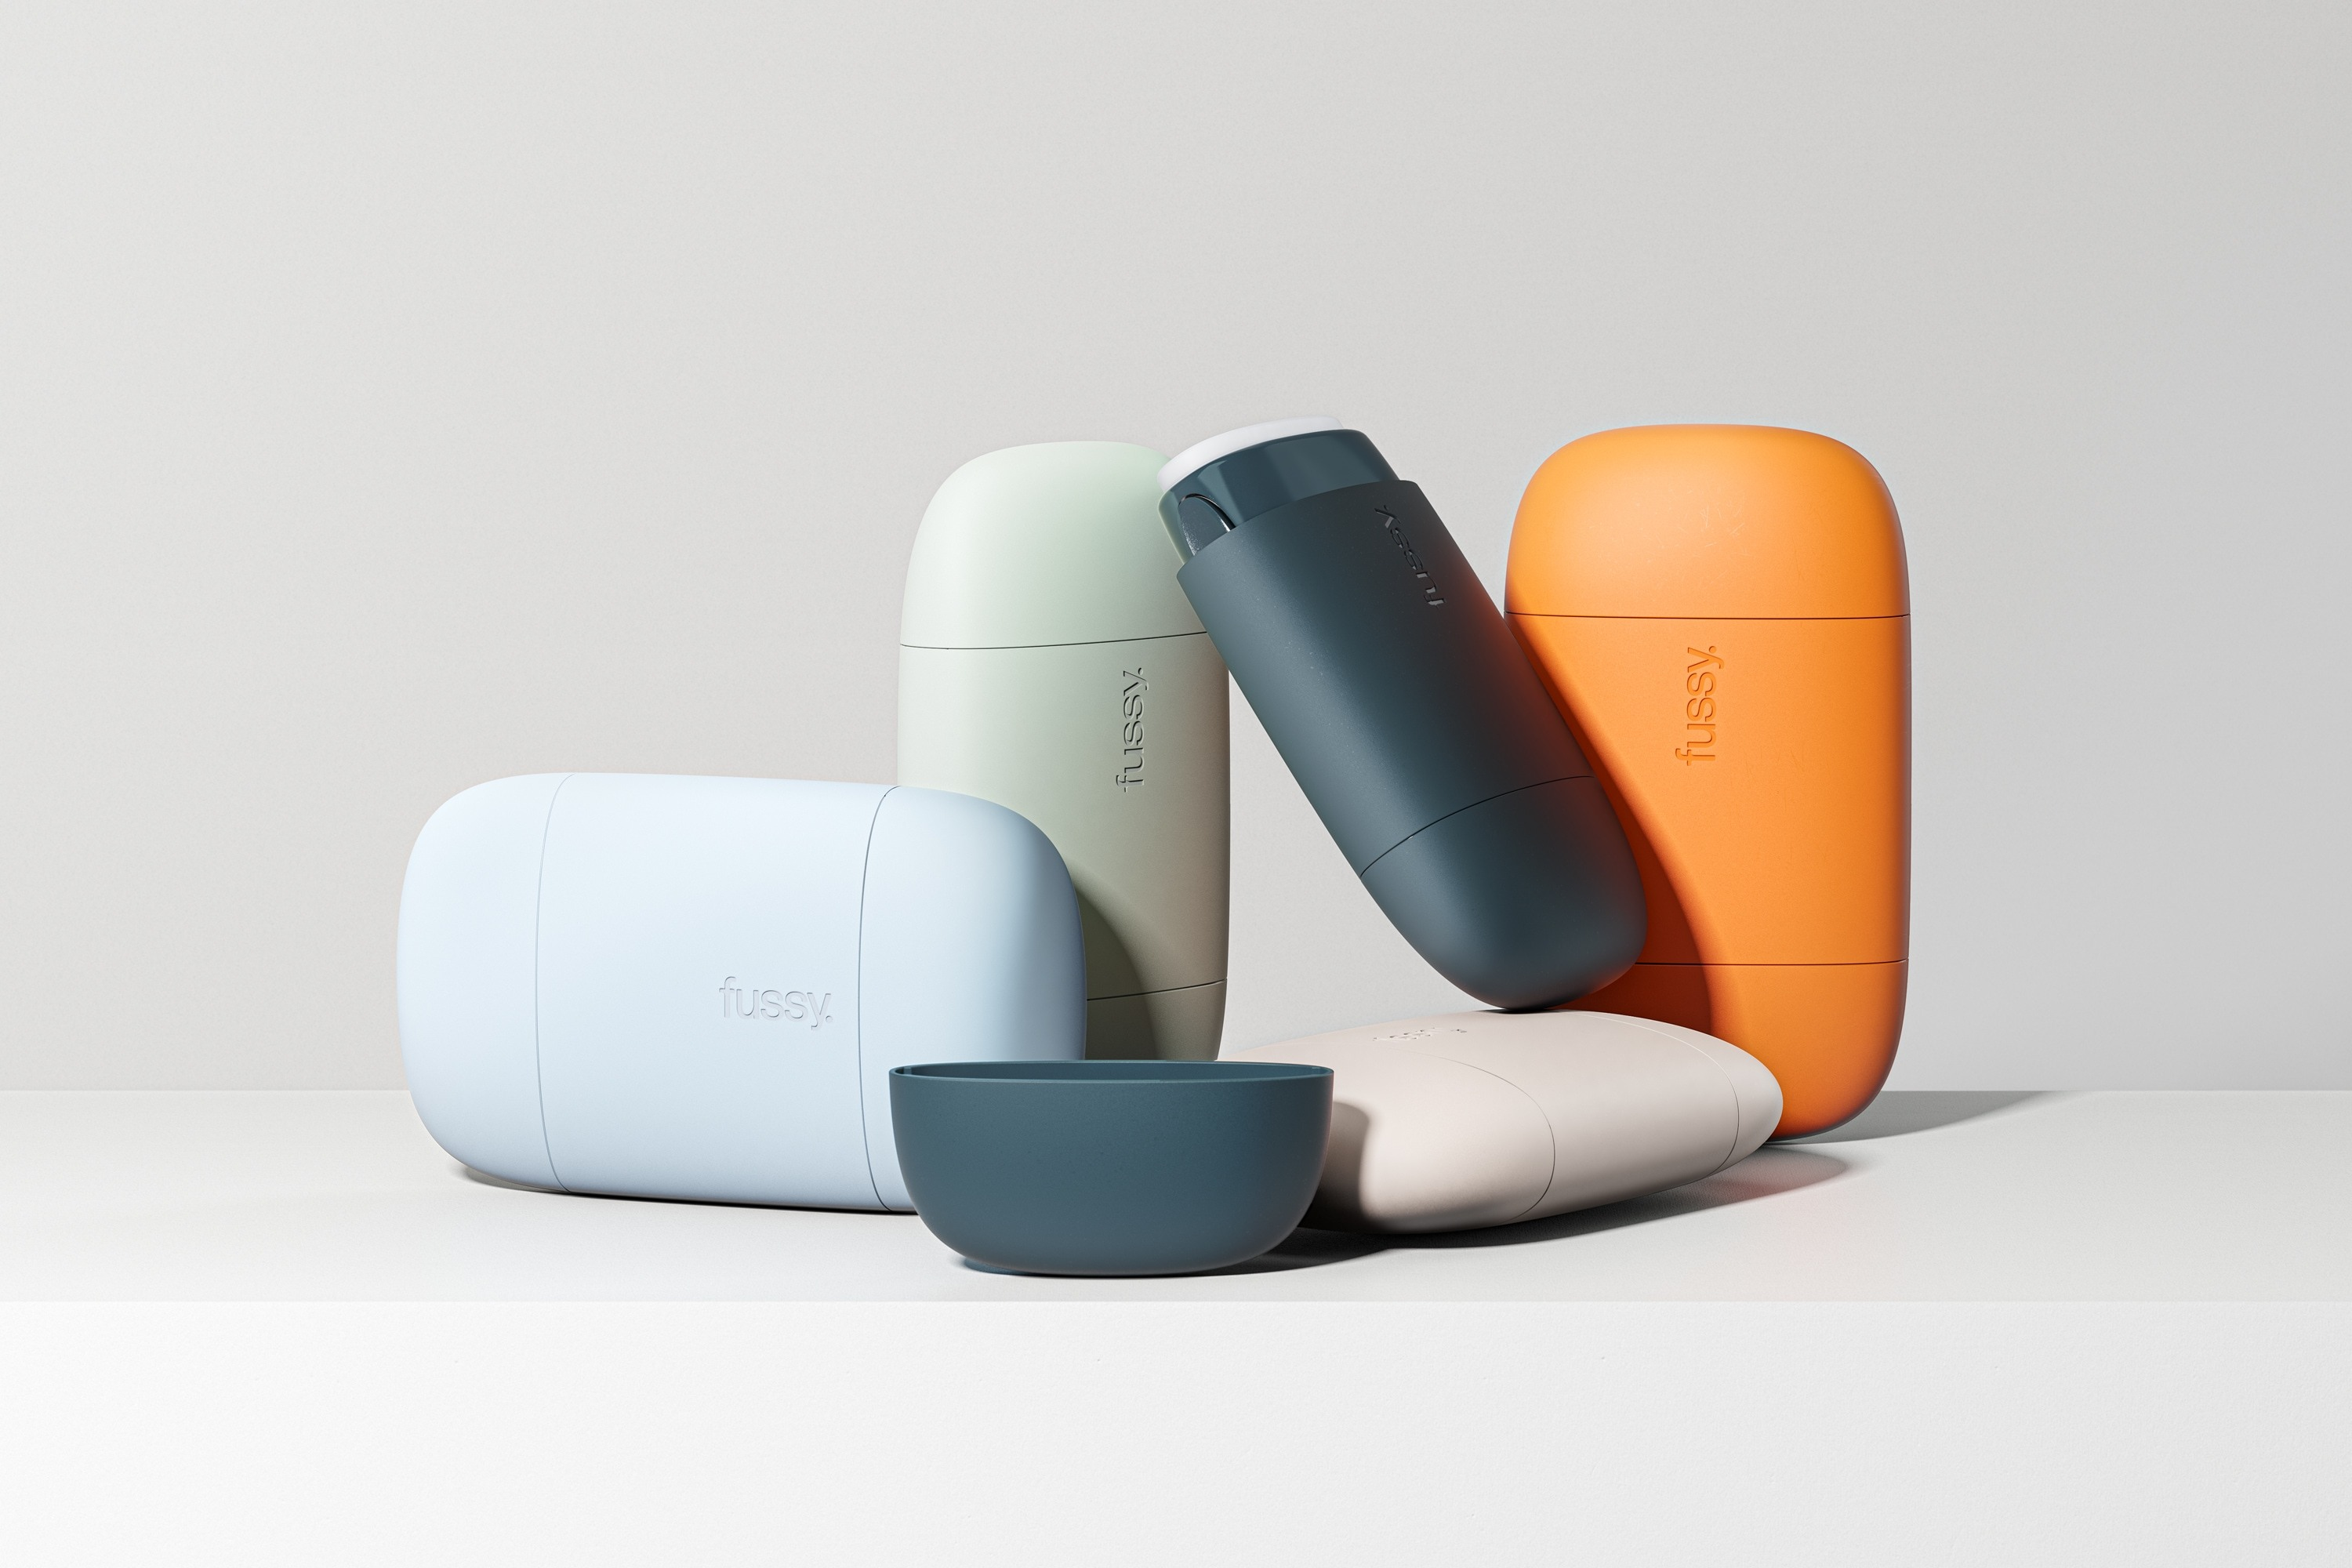 Blond-Design-Agency-Cosmetics-Packaging-Sustainable-Eco-Refillable-Deodorant-Fussy-09